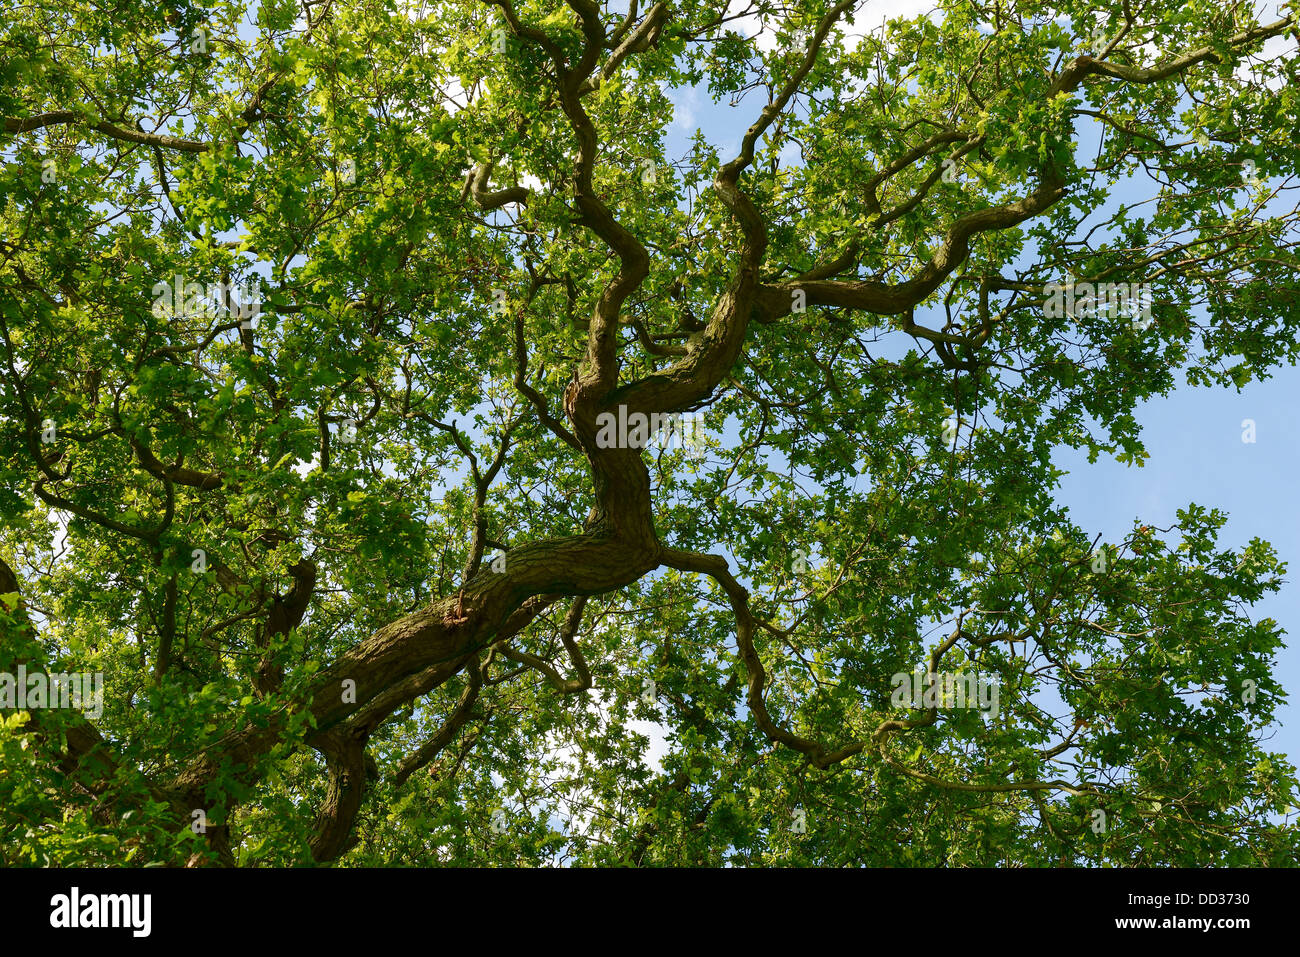 Branch of an oak tree in full leaf with blue sky Cheshire UK - Stock Image